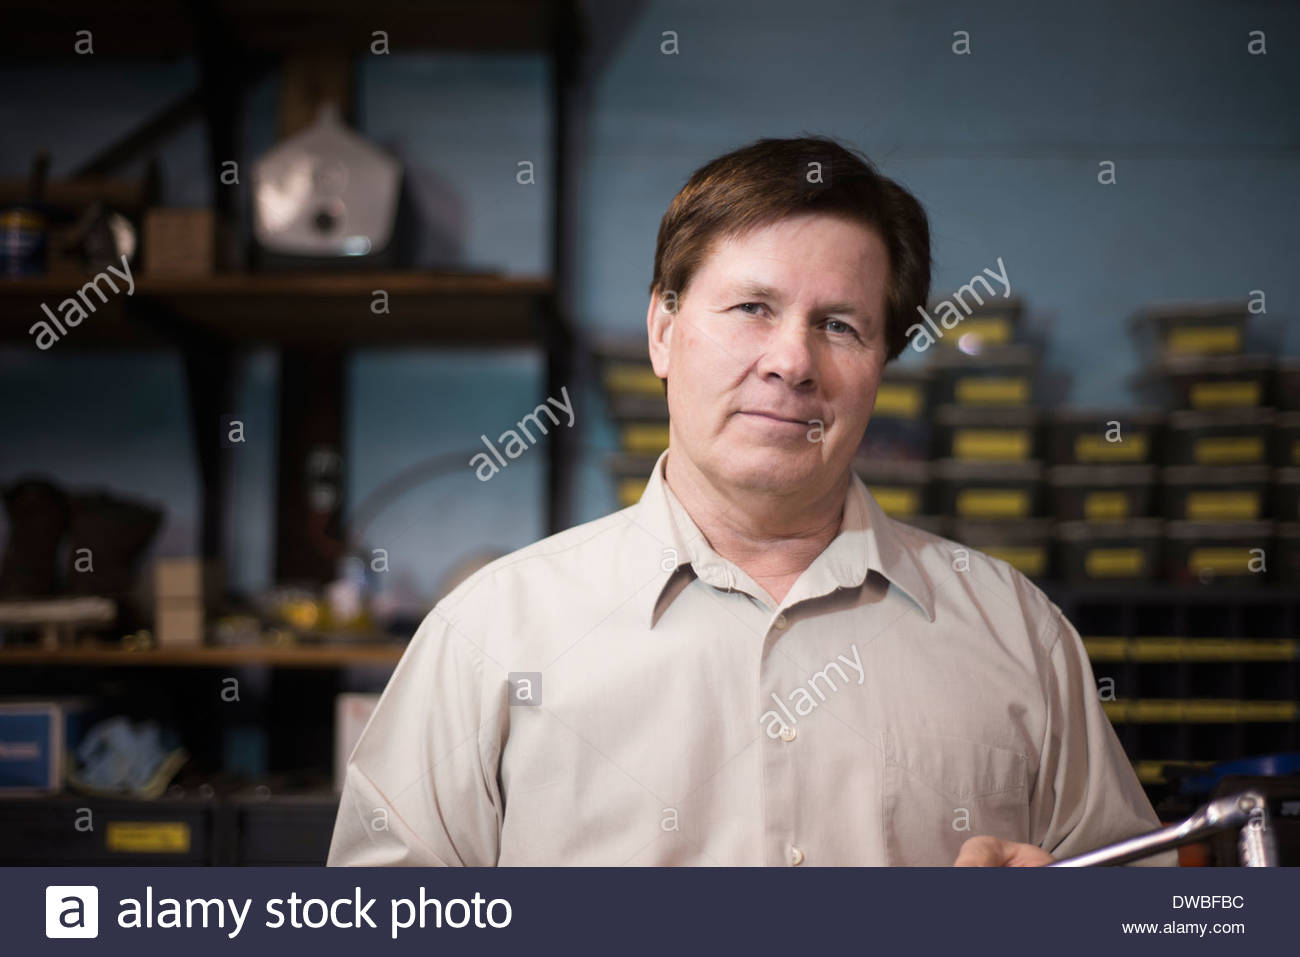 Man in workshop Photo Stock